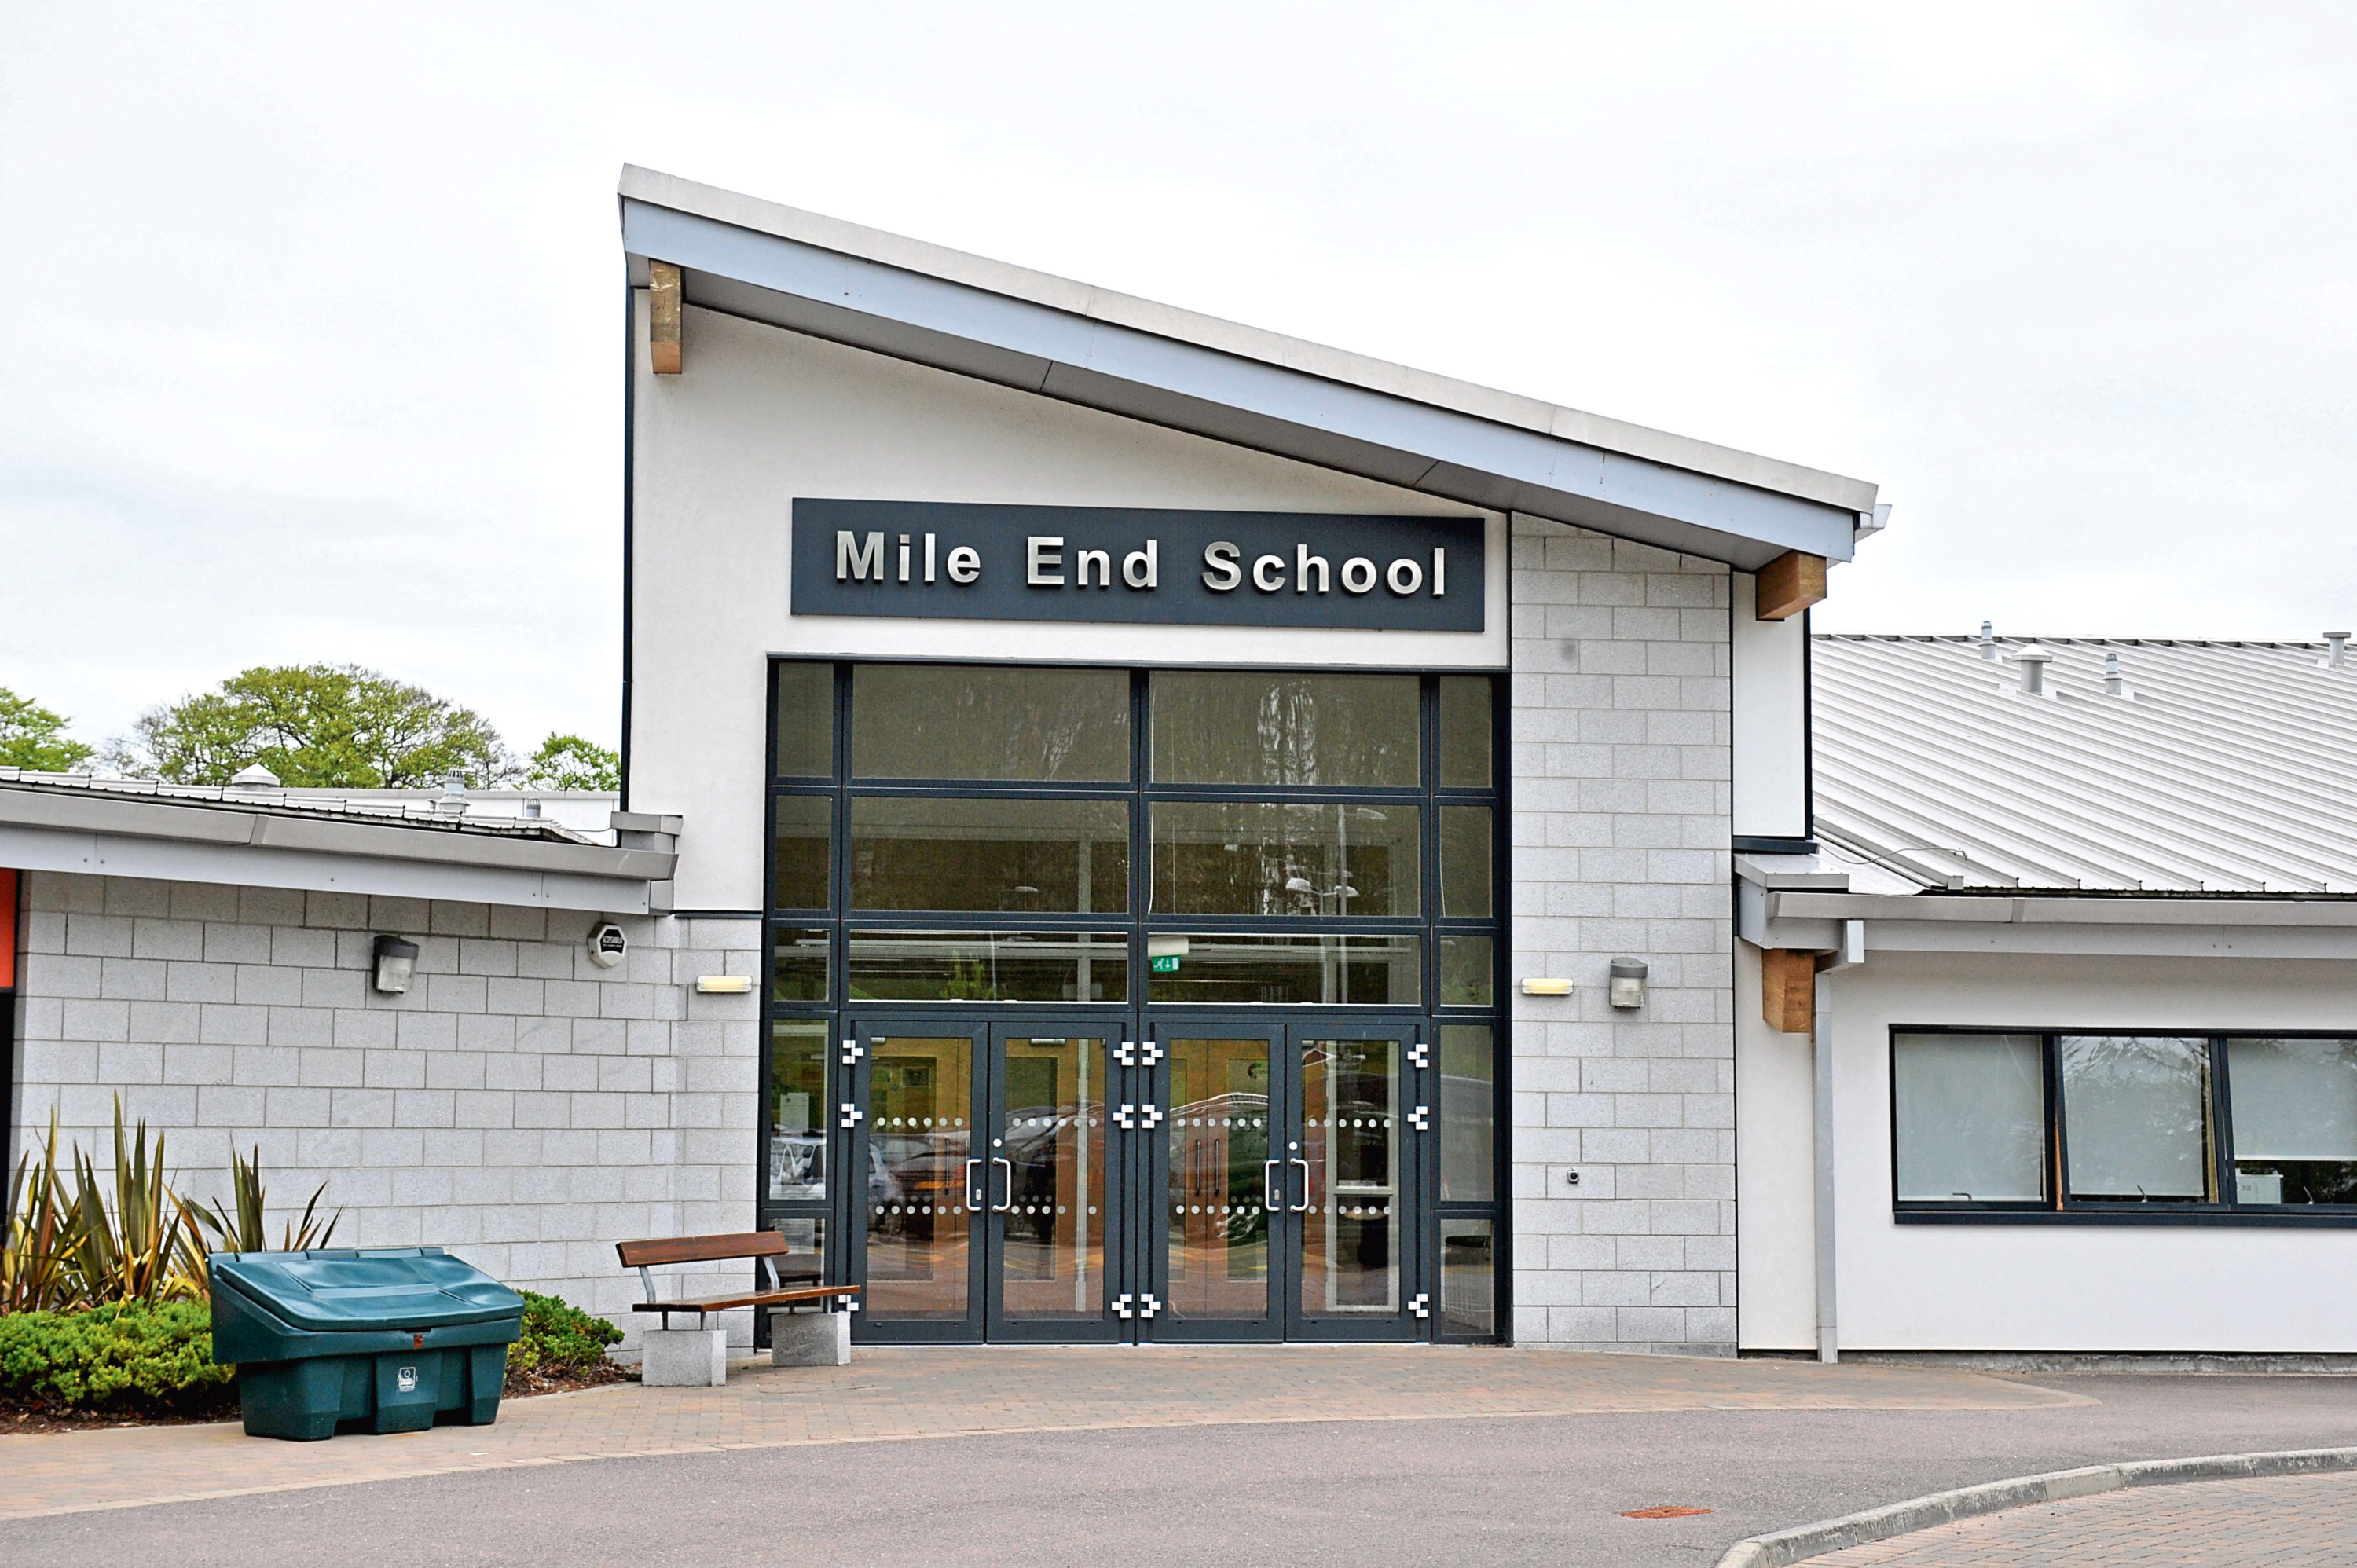 Mile End School's head teacher George Roberts told parents of cutbacks to resources